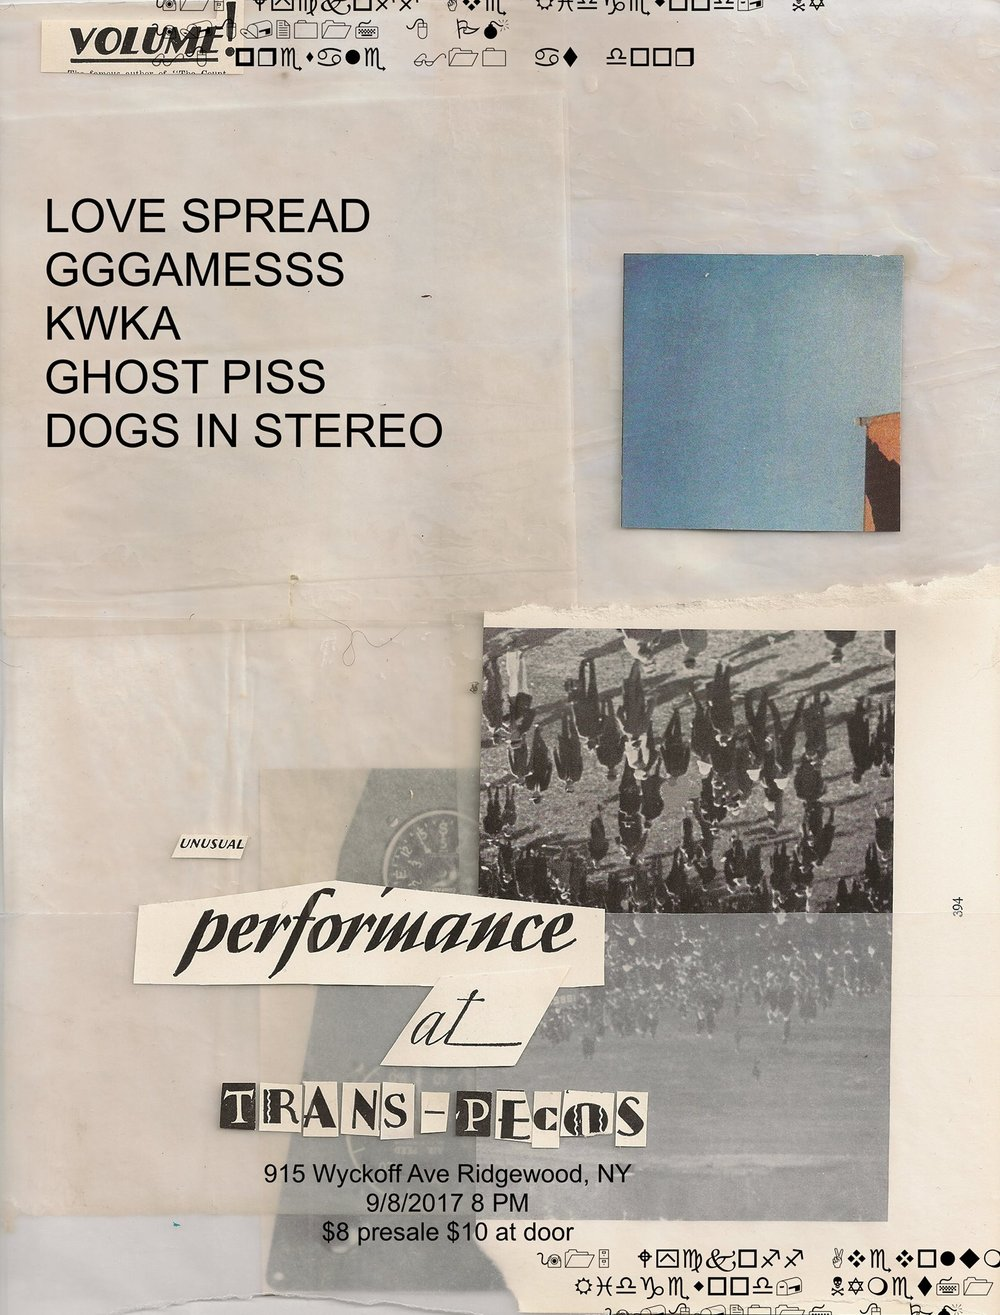 LOVE SPREAD:  http://www.lovespread.tokyo/   GGGAMESSS:  https://colossalsquidrecords.bandcamp.com/album/everything-you-want-nothing-you-need   Kwka:  https://nonexistantrecords.bandcamp.com/album/frontier   GHOST PISS:  https://soundcloud.com/missghostpiss   Dogs In Stereo:  https://dogsinstereo.bandcamp.com/   Poster by Heather Radford